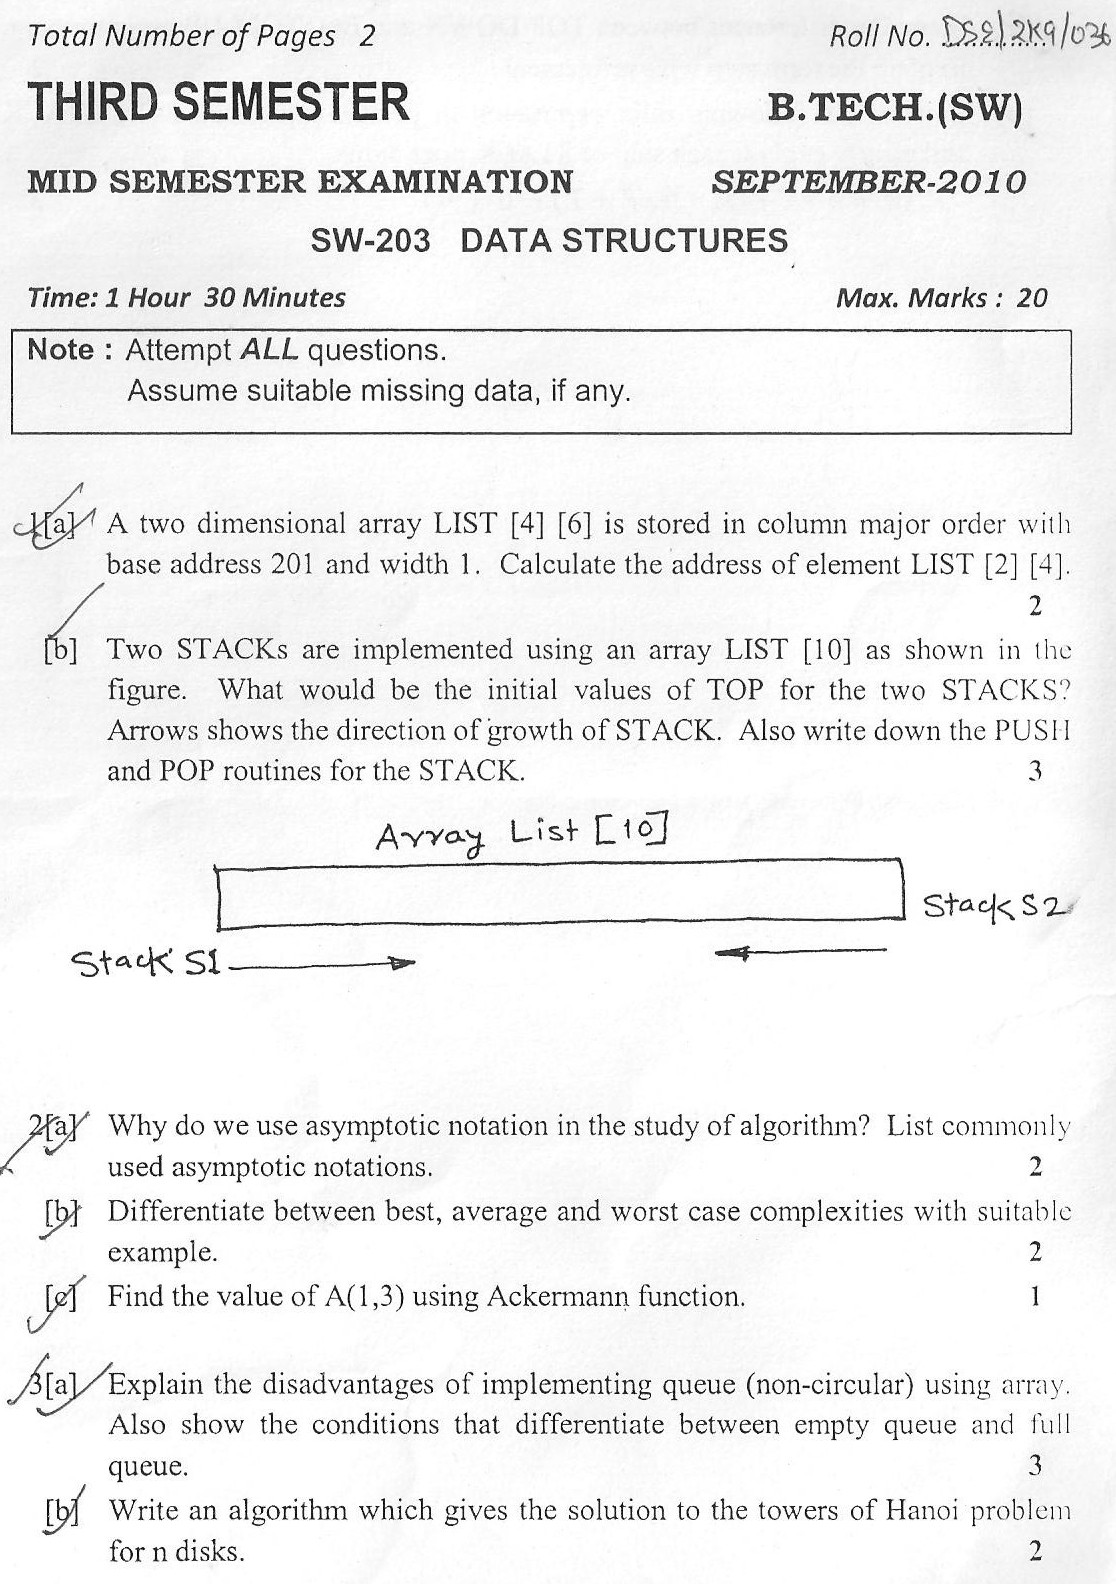 DTU Question Papers 2010 – 3 Semester - Mid Sem - SW-203